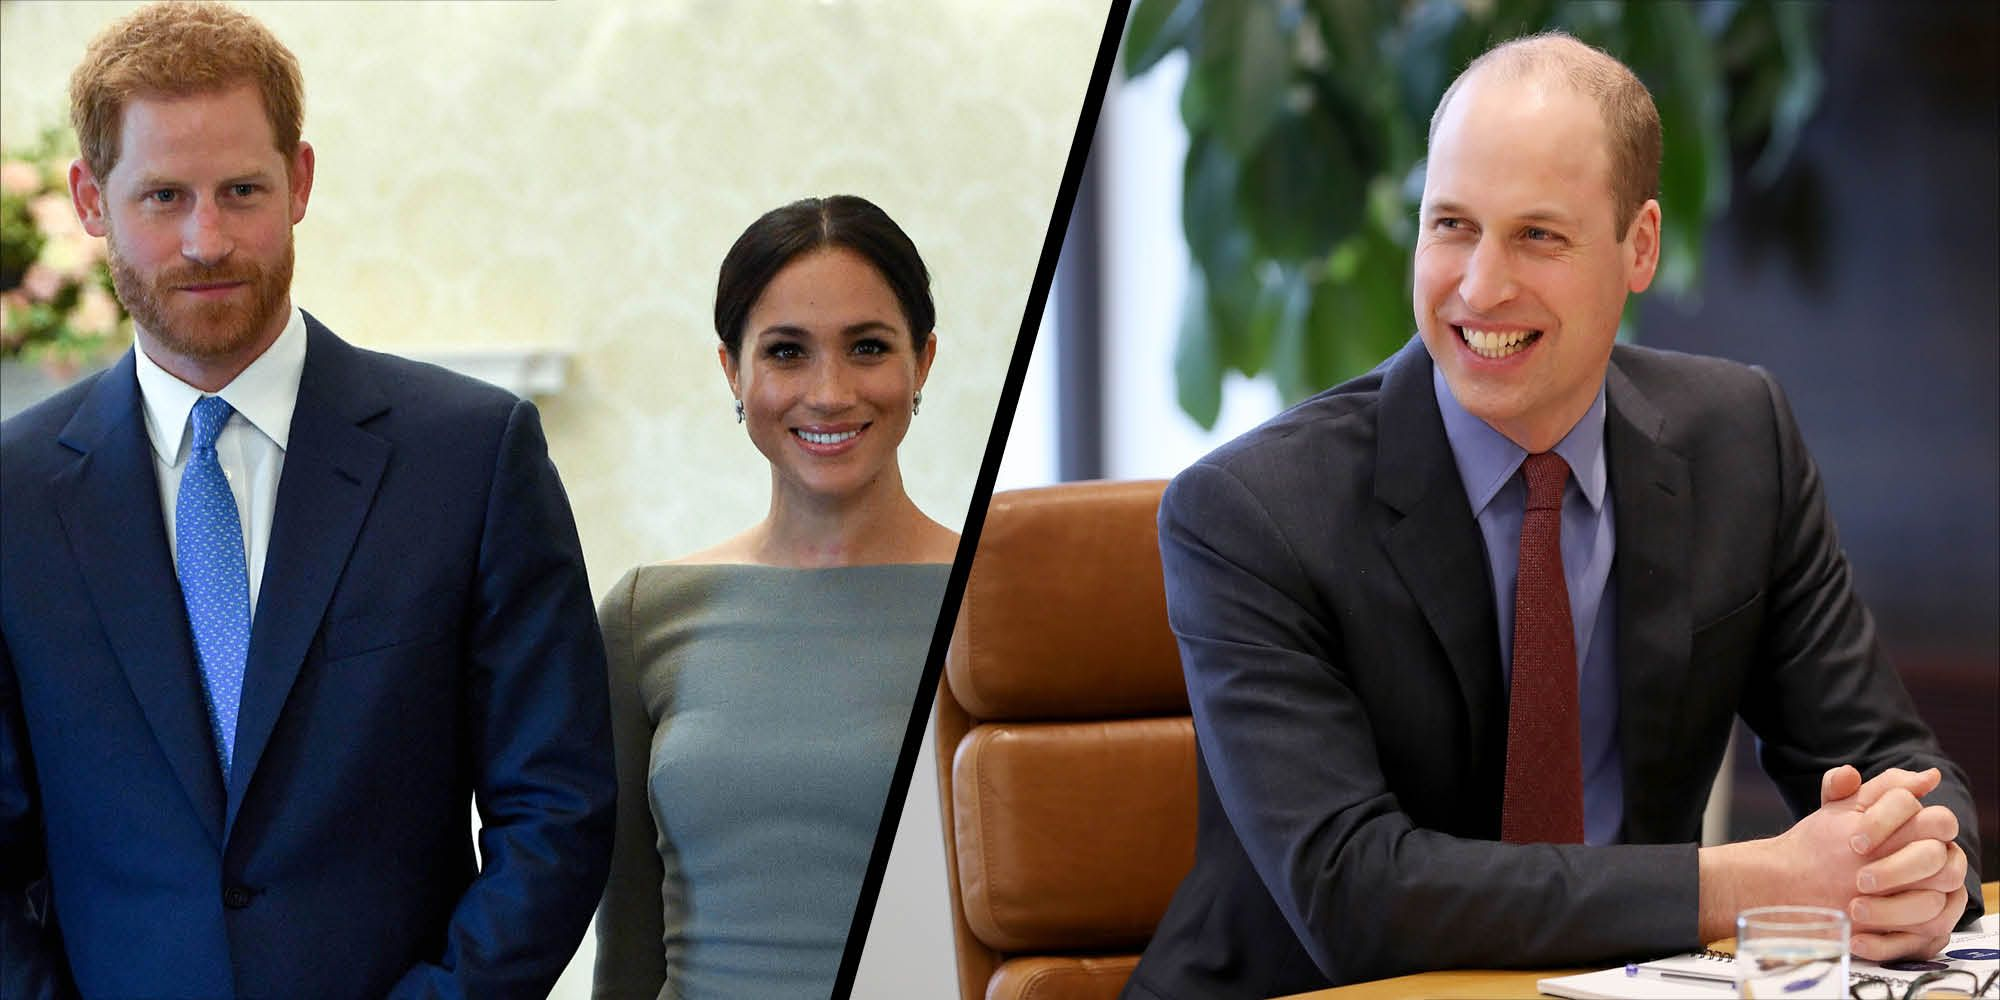 Harry, Meghan and William